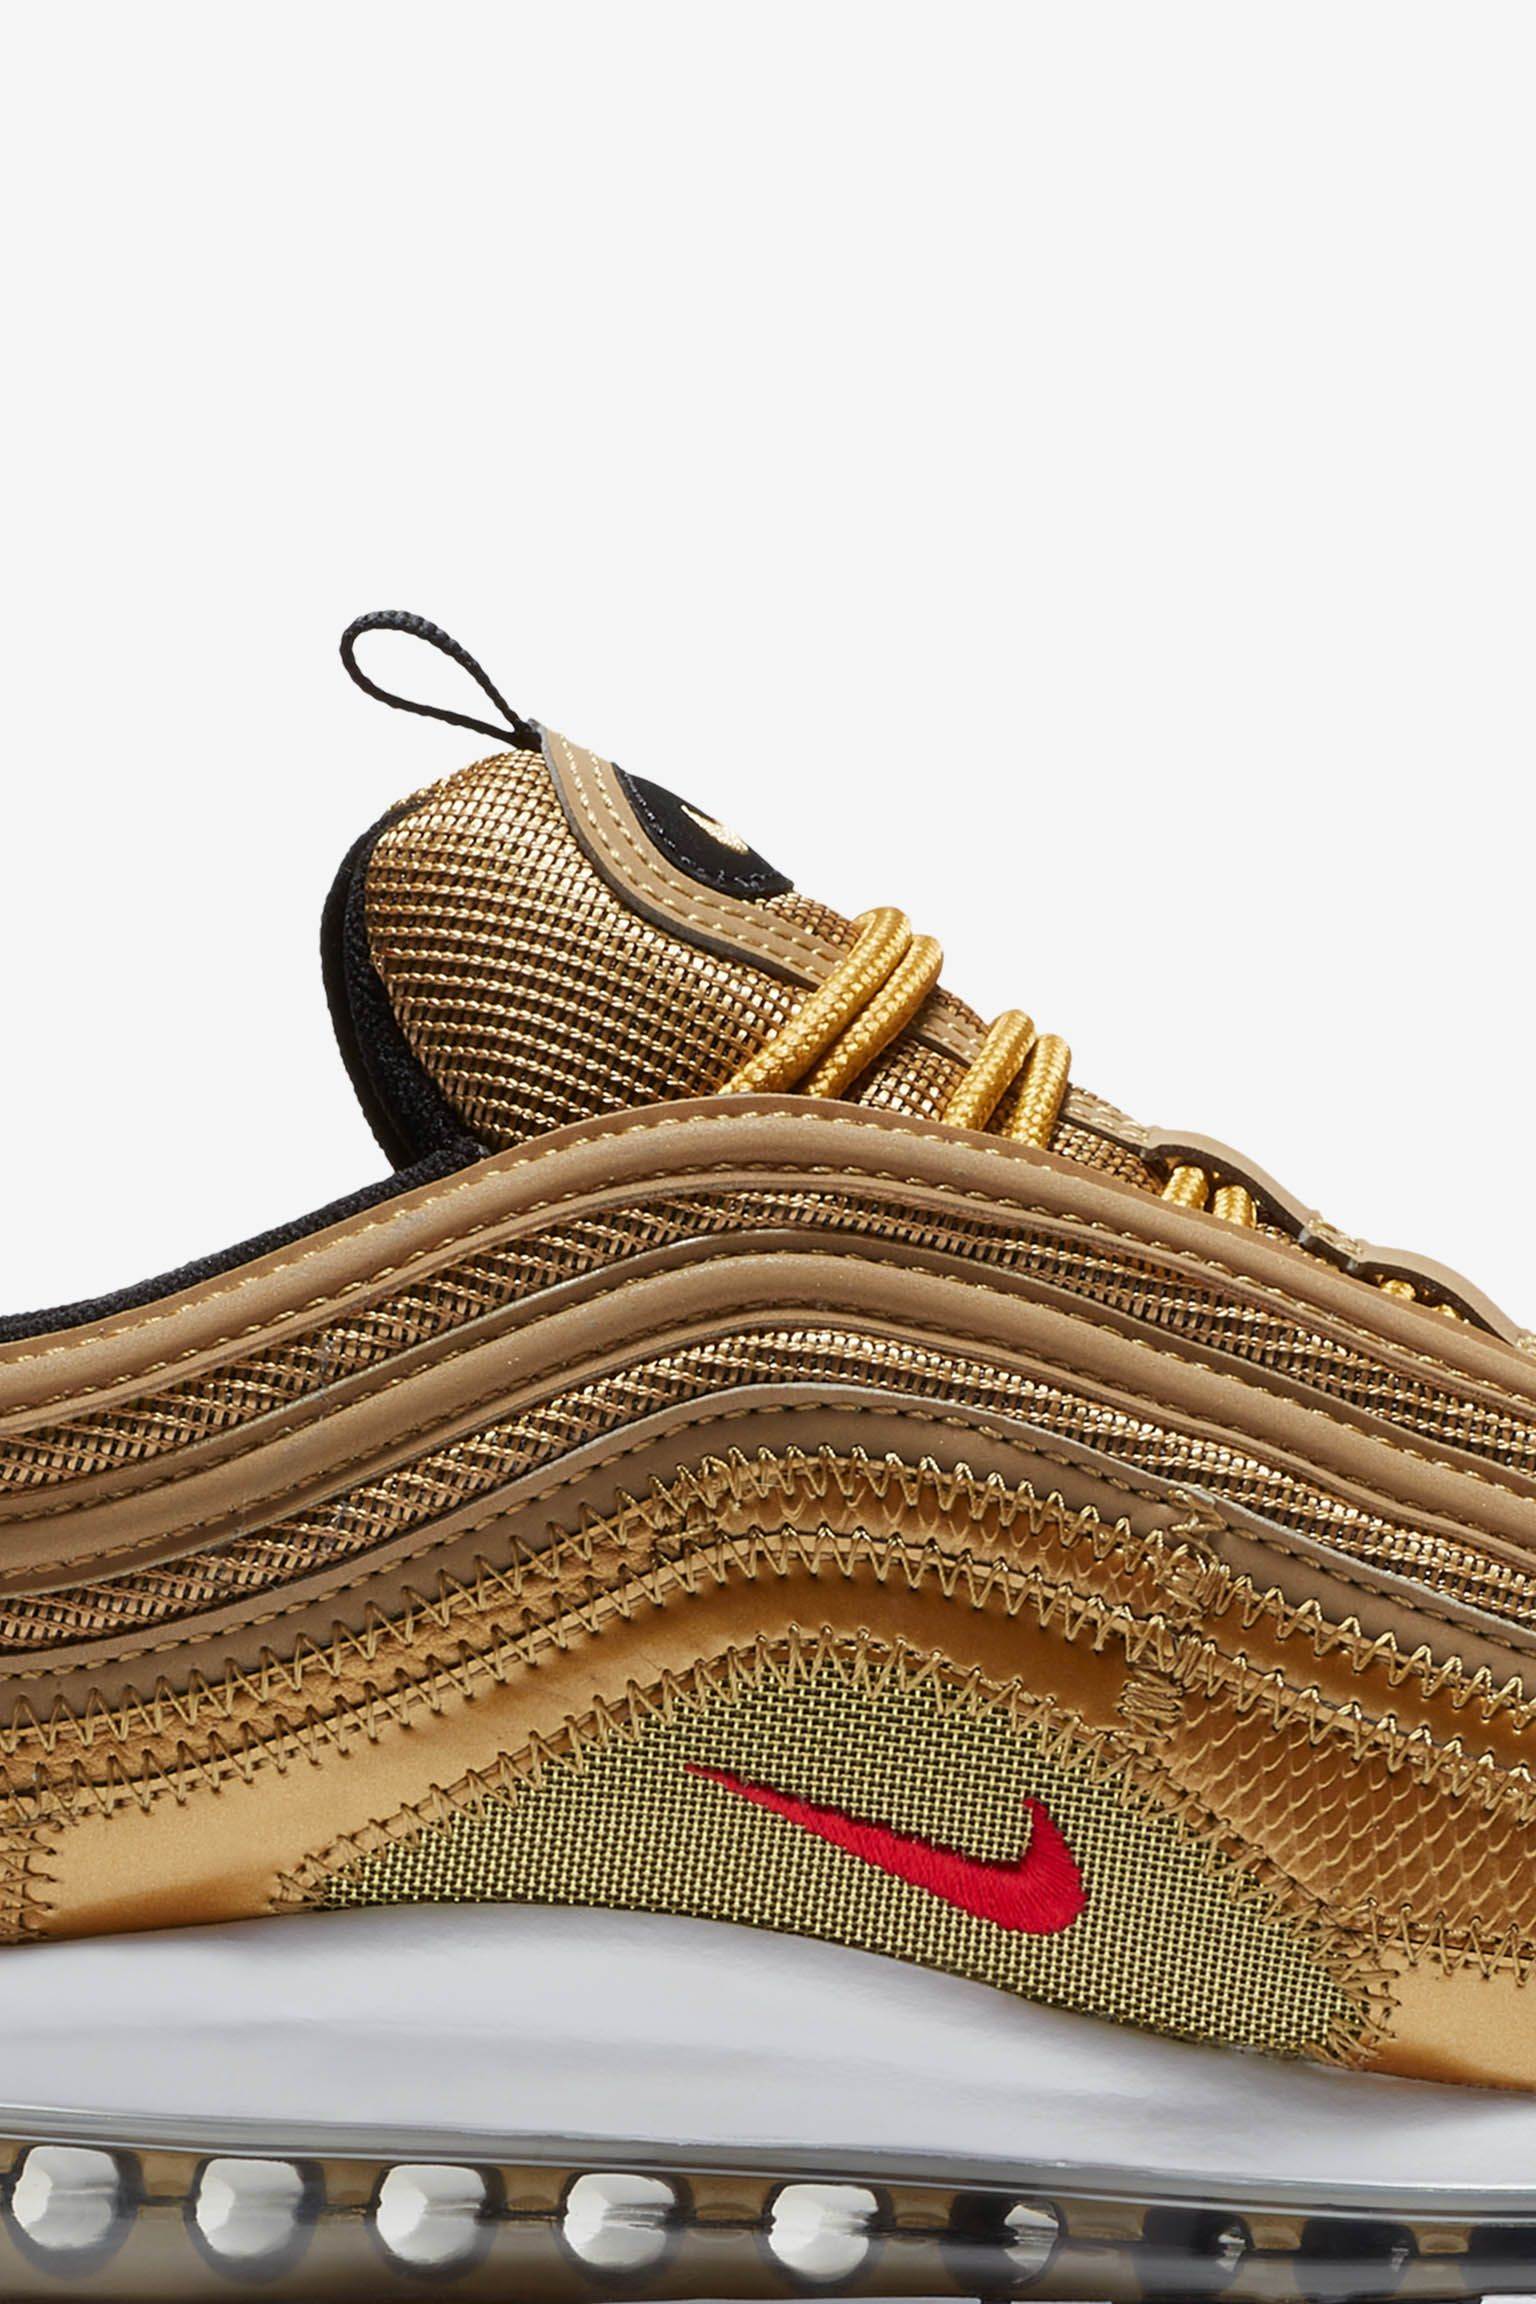 Nike Air Max 97 CR7 'Golden Patchwork' Release Date. Nike SNKRS GB